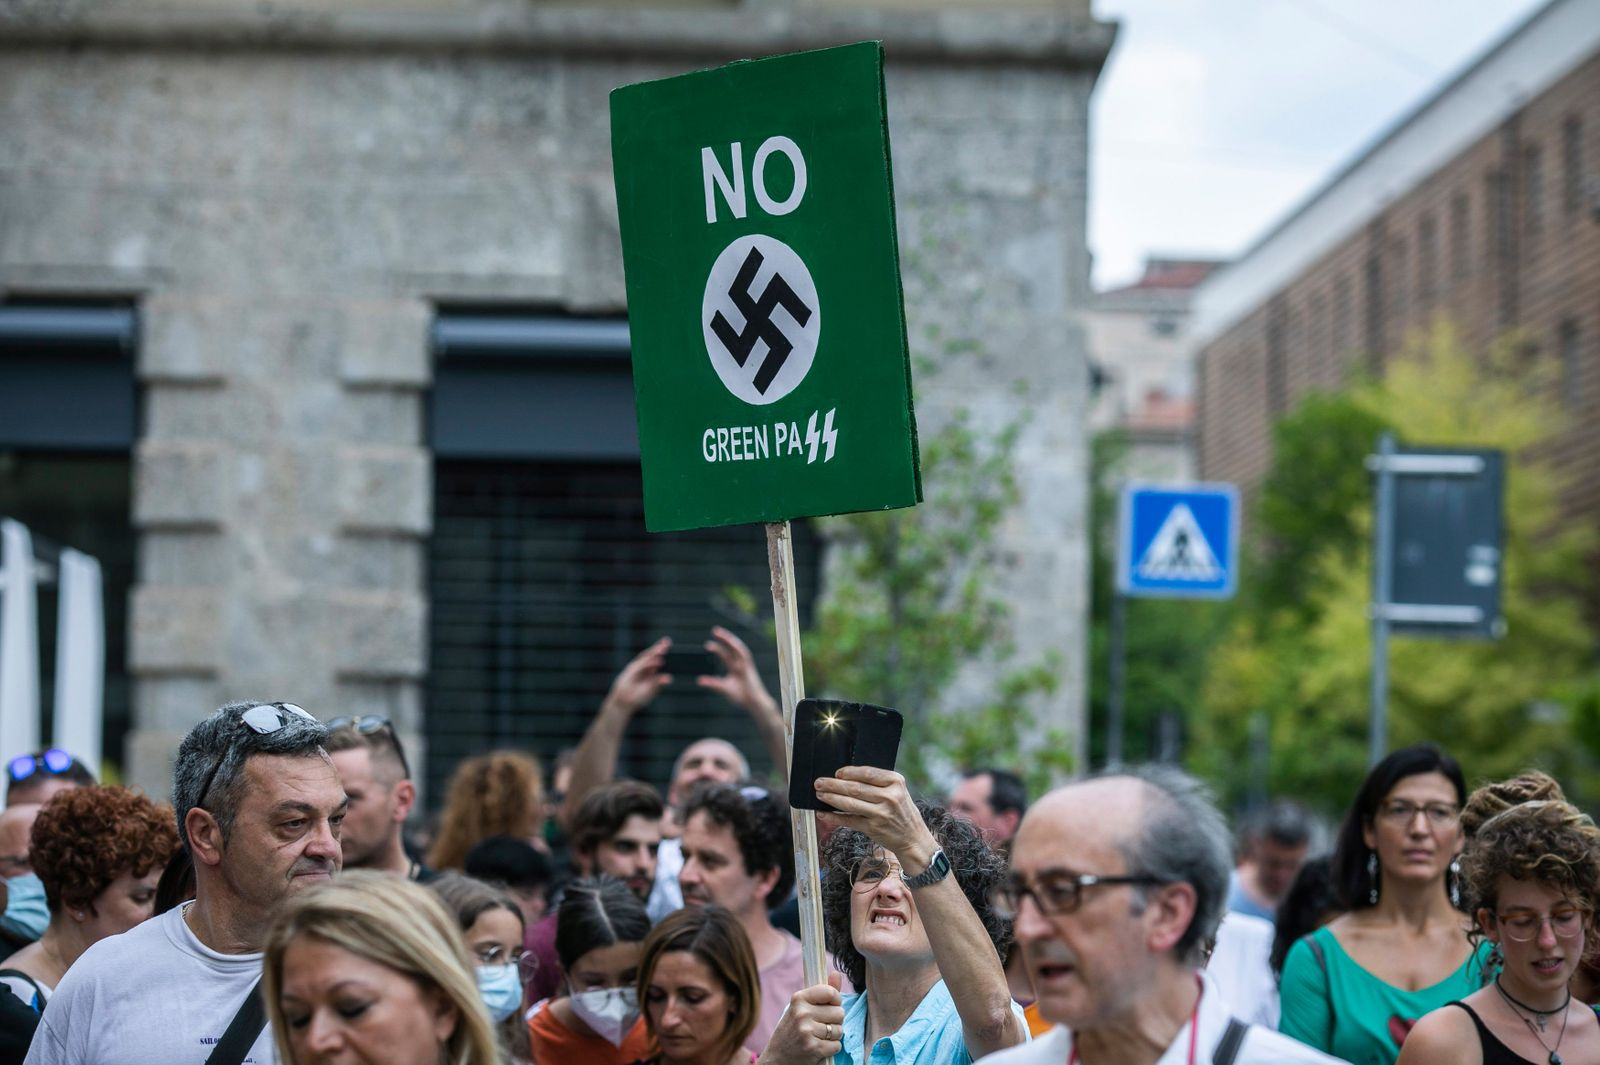 Italy, Bergamo: Covid-19 deniers, No Vax, conspiracy theorists and far right people demonstrate against the Green Pass required by the government starting from 6 August